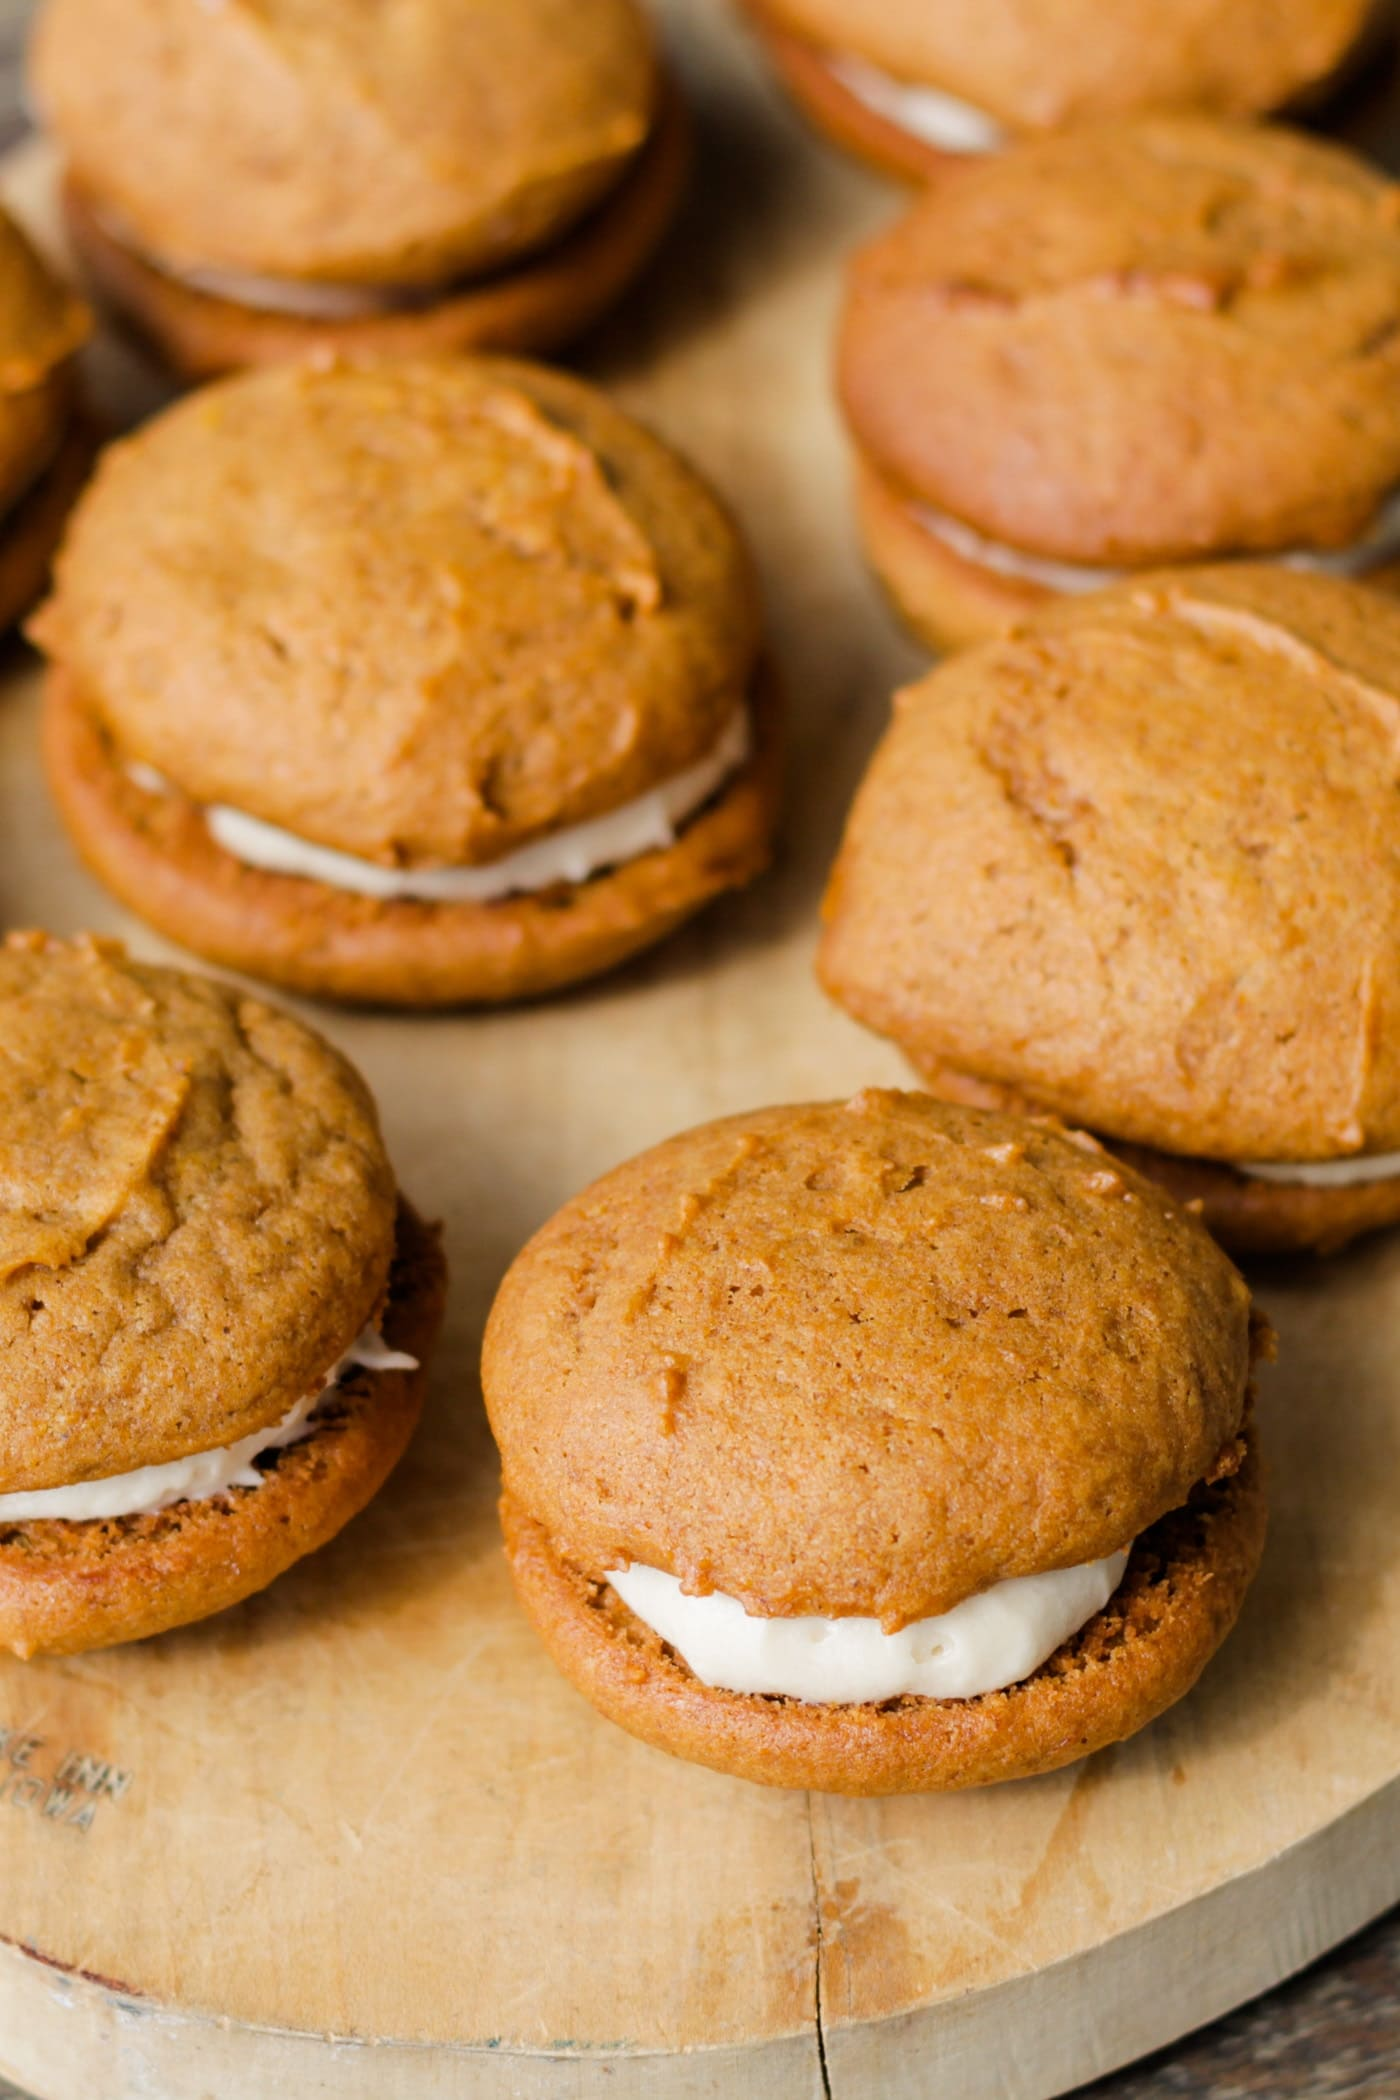 Multiple brown pumpkin whoopie pies with frosting in middle sitting on wood cutting board with extra whoopie pies in background